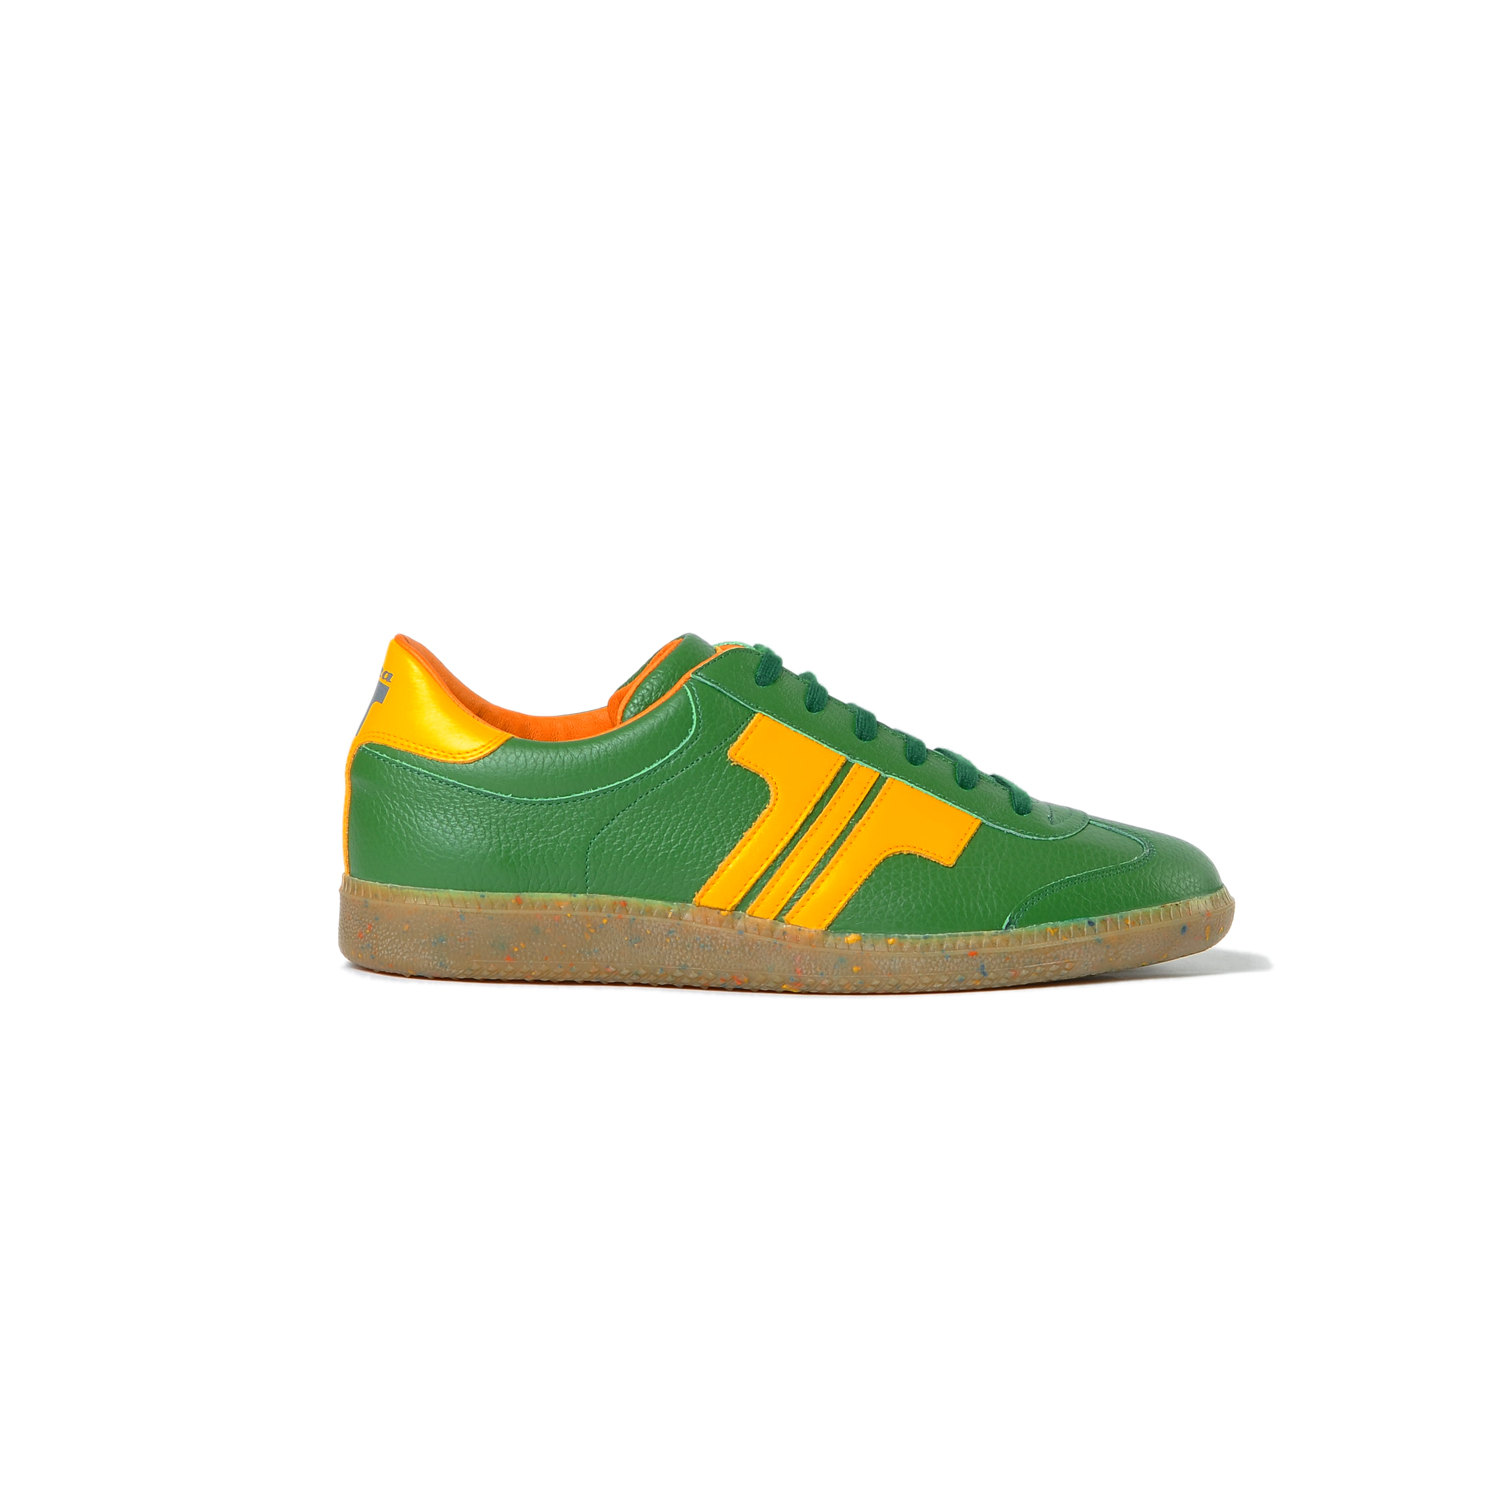 Tisza shoes - Compakt - Green-yellow